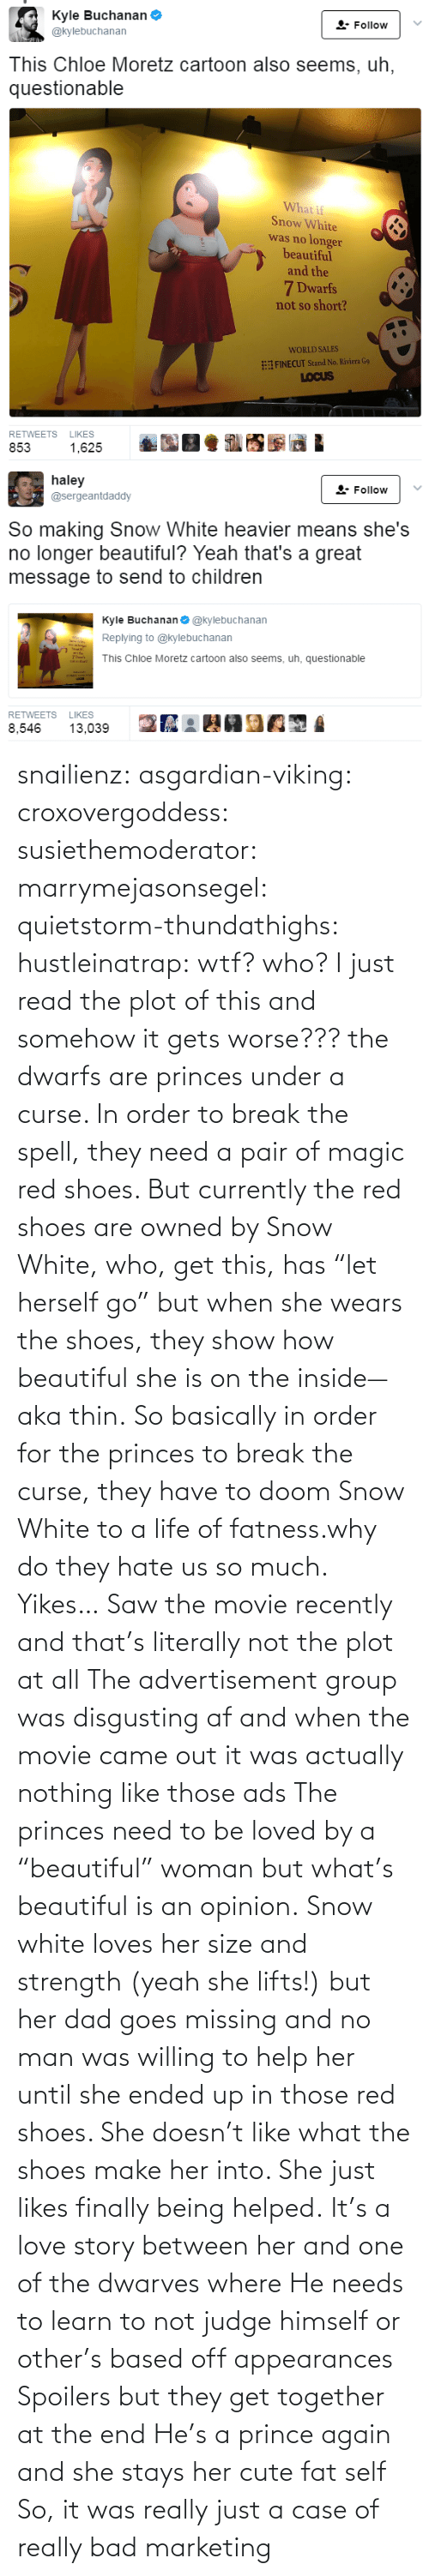 "missing: snailienz: asgardian-viking:  croxovergoddess:  susiethemoderator:  marrymejasonsegel:   quietstorm-thundathighs:  hustleinatrap: wtf?  who?   I just read the plot of this and somehow it gets worse??? the dwarfs are princes under a curse. In order to break the spell, they need a pair of magic red shoes. But currently the red shoes are owned by Snow White, who, get this, has ""let herself go"" but when she wears the shoes, they show how beautiful she is on the inside—aka thin. So basically in order for the princes to break the curse, they have to doom Snow White to a life of fatness.why do they hate us so much.   Yikes…    Saw the movie recently and that's literally not the plot at all The advertisement group was disgusting af and when the movie came out it was actually nothing like those ads The princes need to be loved by a ""beautiful"" woman but what's beautiful is an opinion. Snow white loves her size and strength (yeah she lifts!) but her dad goes missing and no man was willing to help her until she ended up in those red shoes. She doesn't like what the shoes make her into. She just likes finally being helped. It's a love story between her and one of the dwarves where He needs to learn to not judge himself or other's based off appearances  Spoilers but they get together at the end He's a prince again and she stays her cute fat self  So, it was really just a case of really bad marketing"